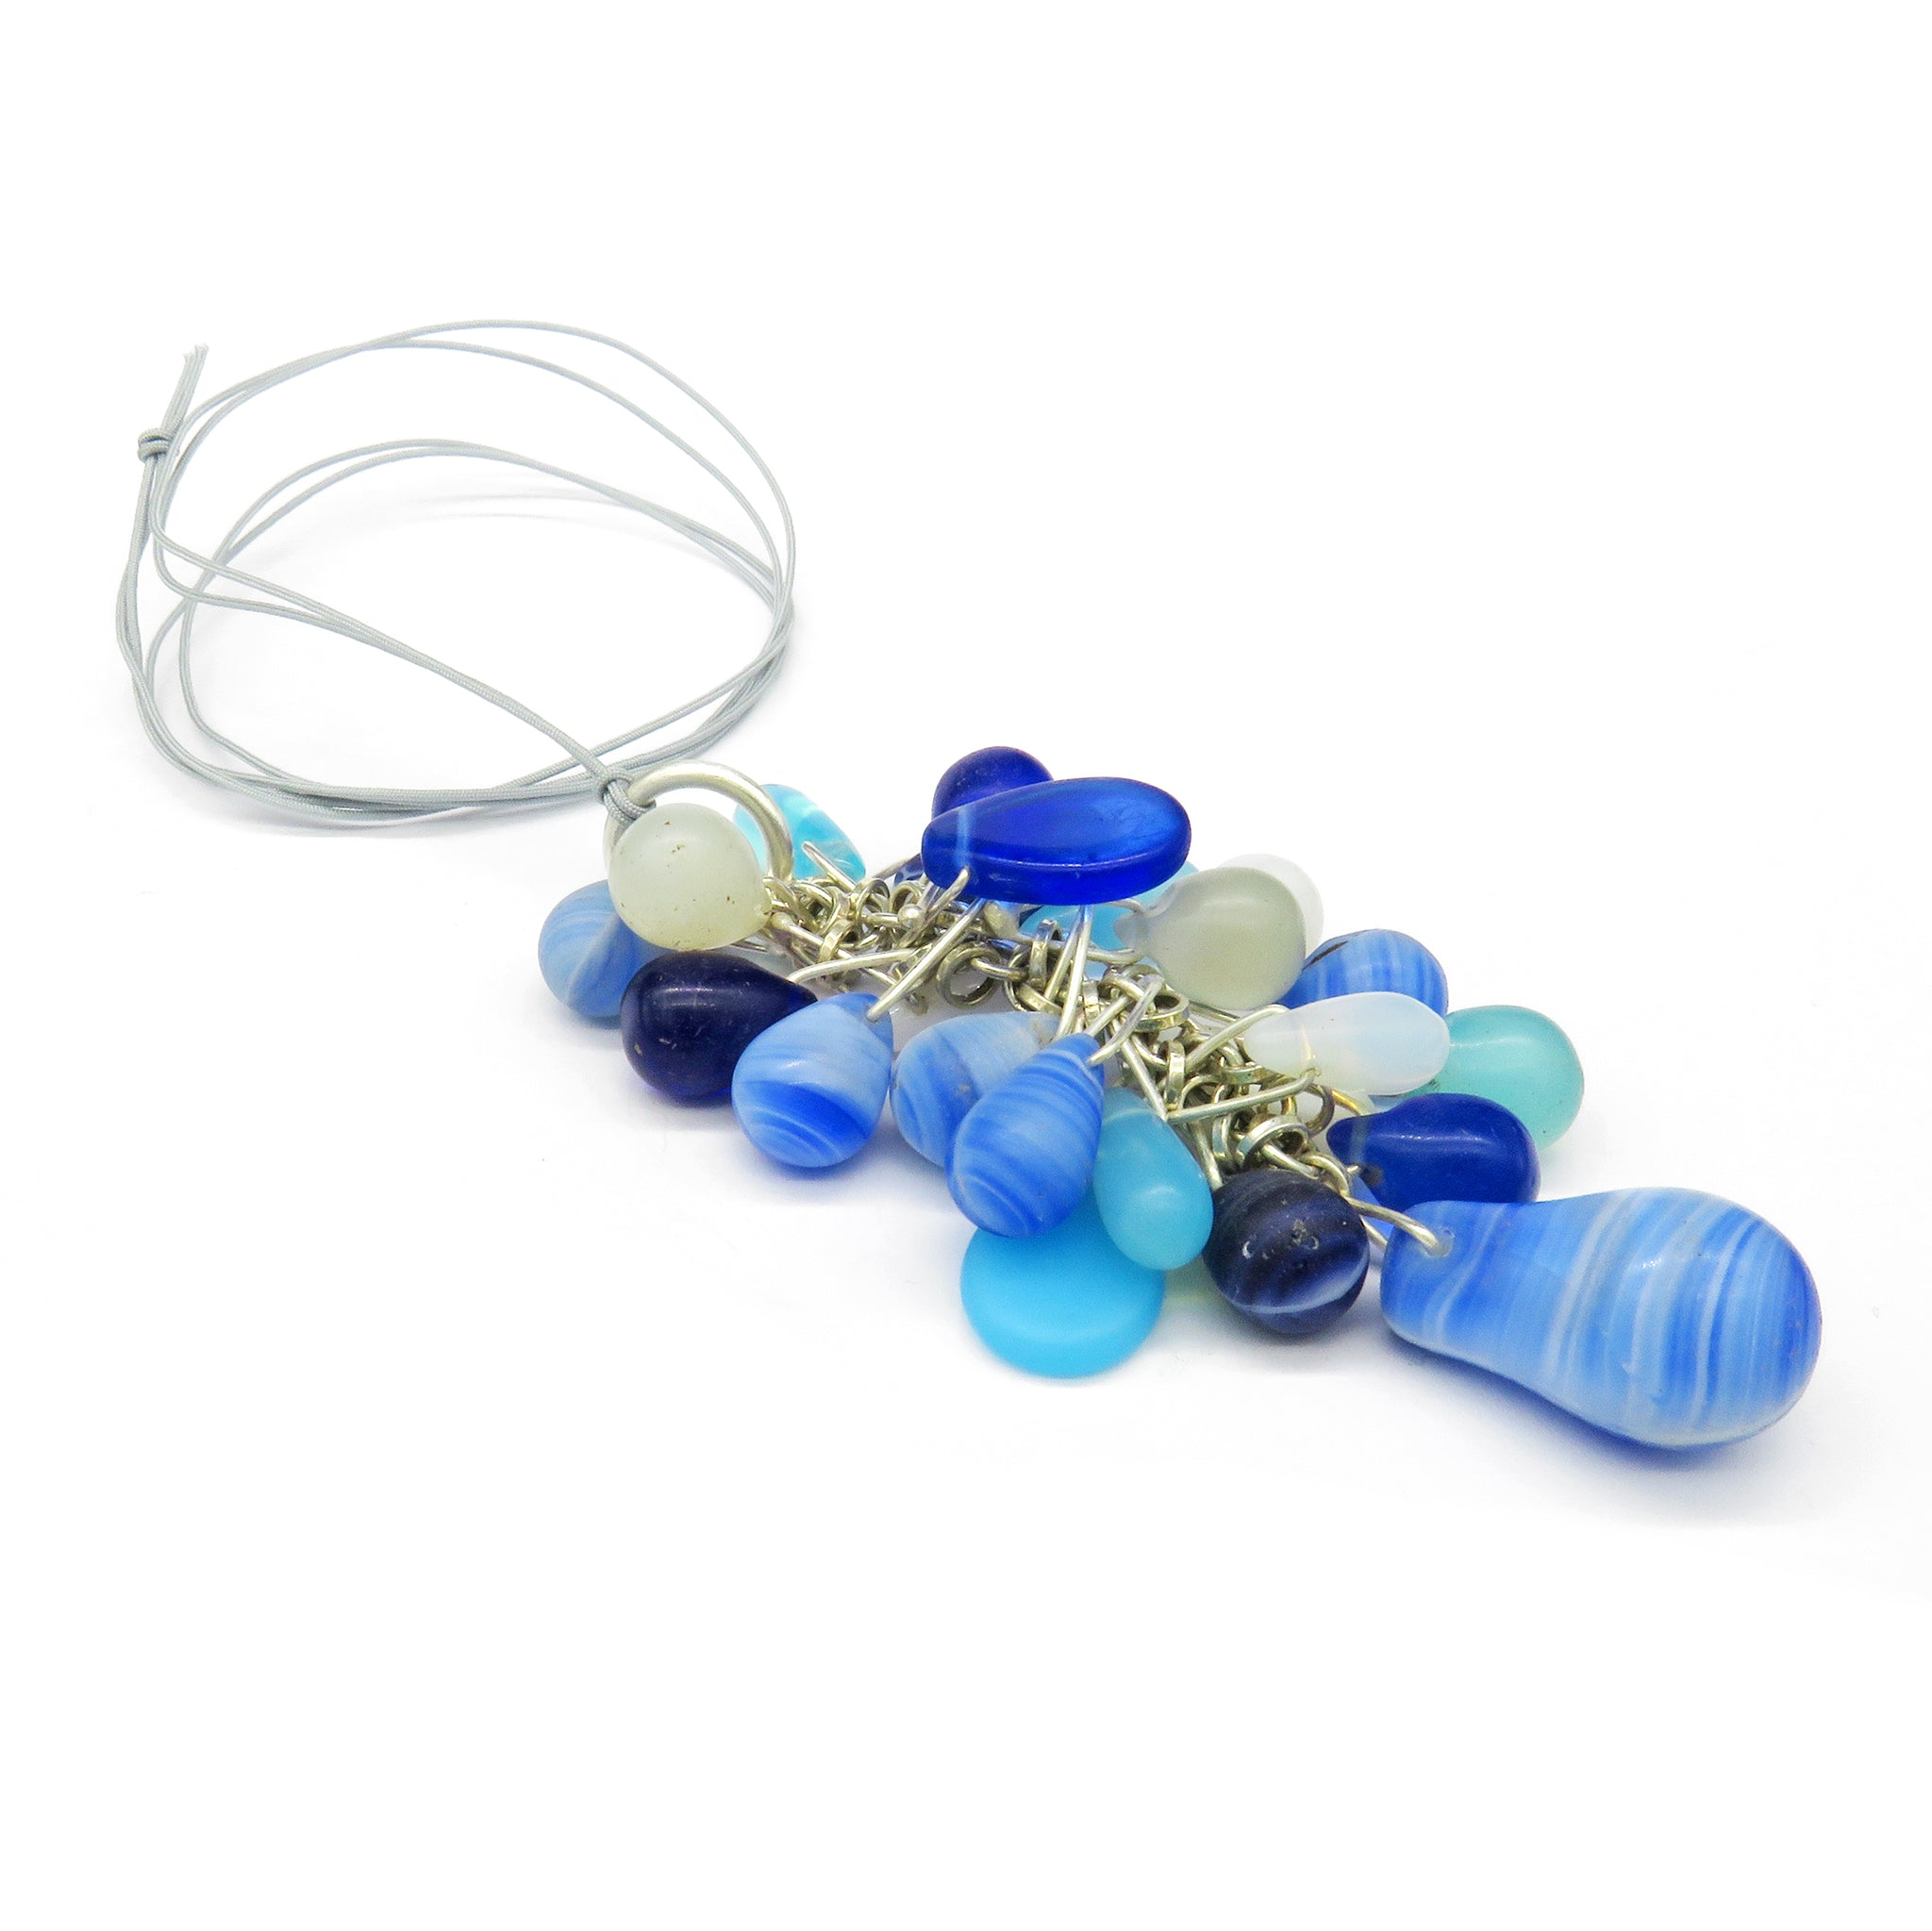 Blue trade bead cluster pendant